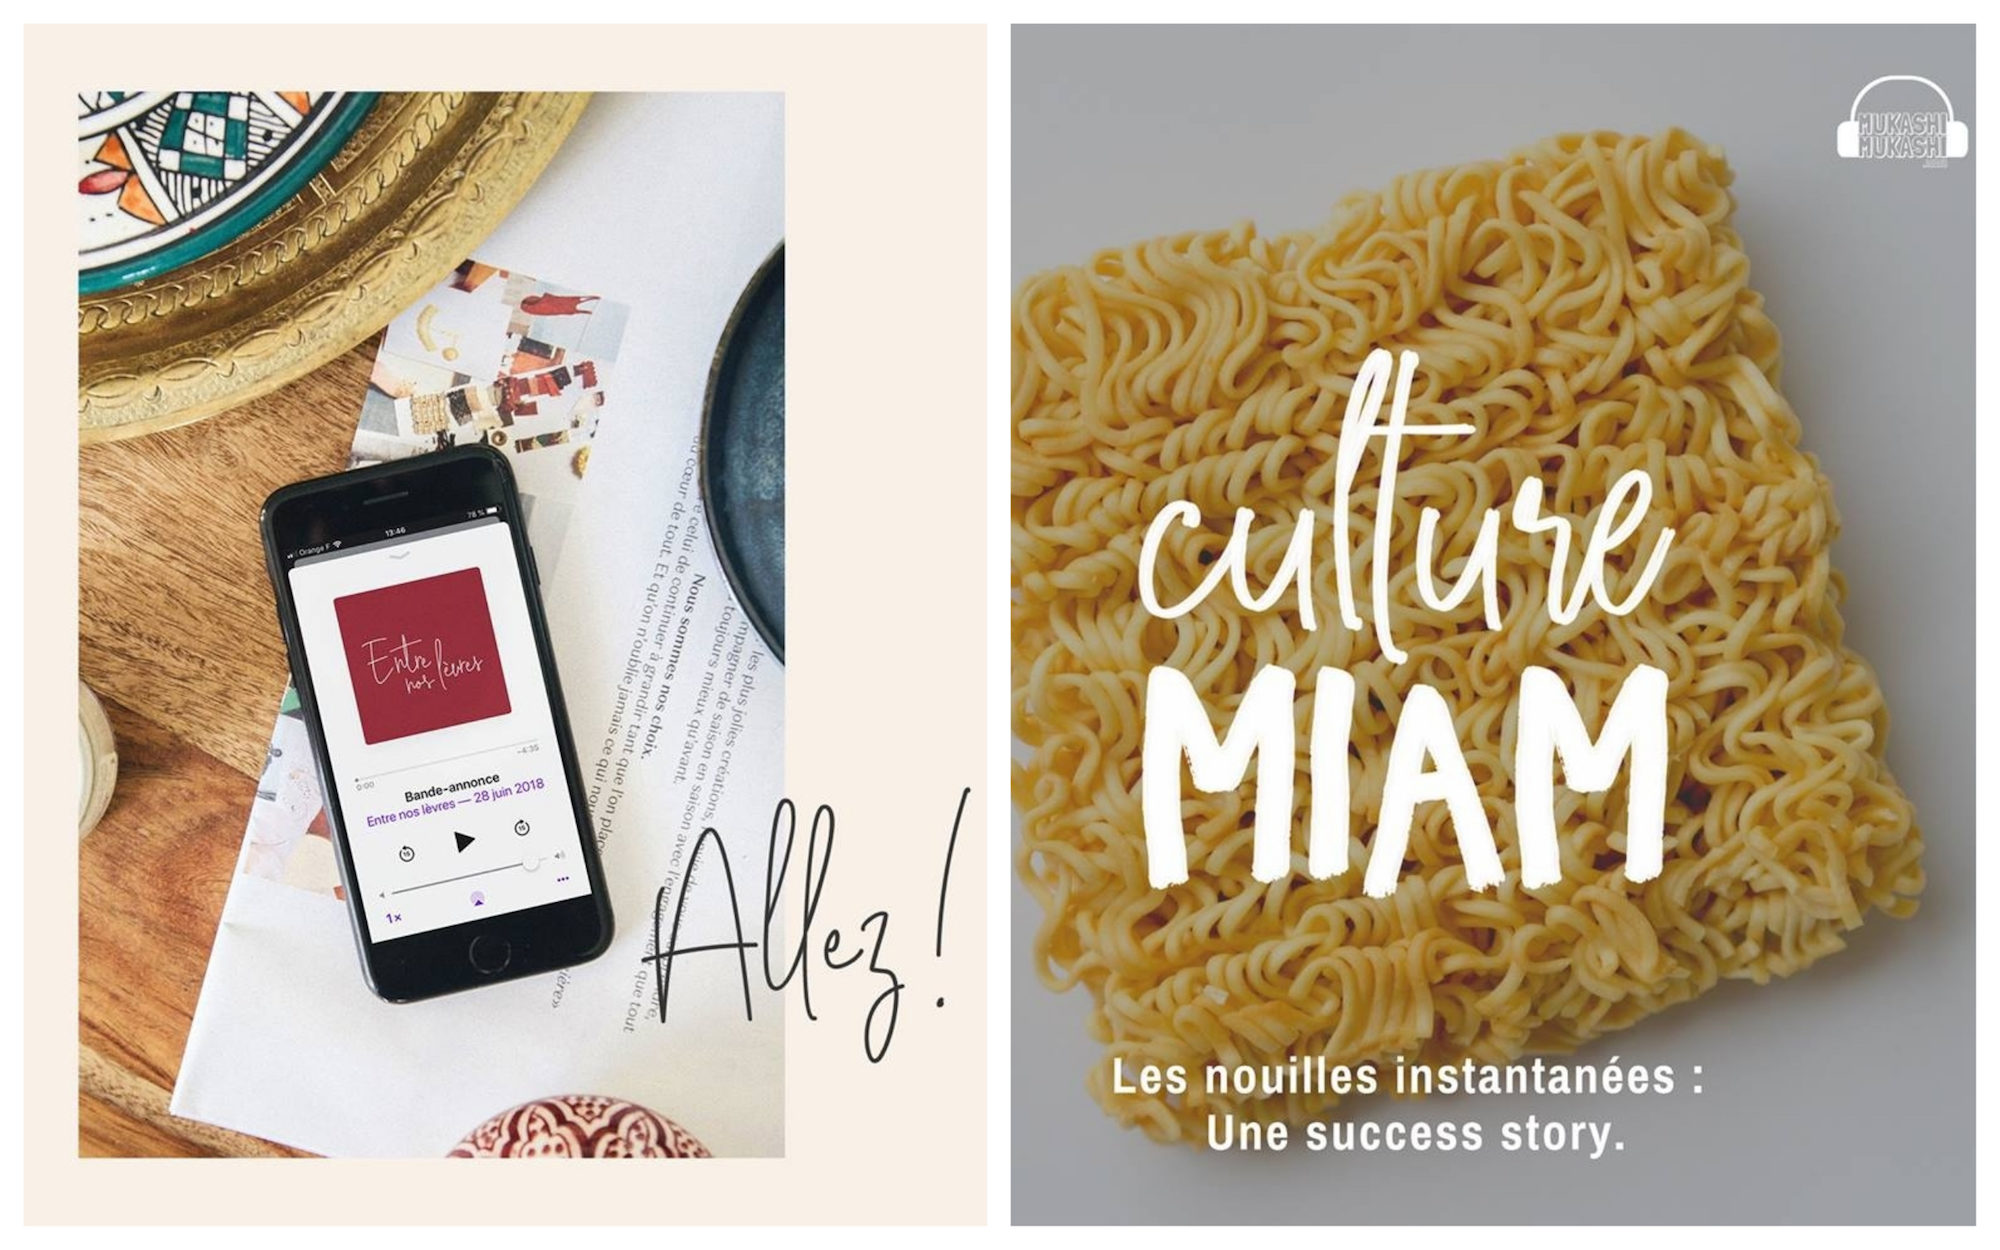 HiP Paris Blog rounds up the best French podcasts to listen to this summer like Entre nos Lèvres (left) and Culture Miam, all about food (right).